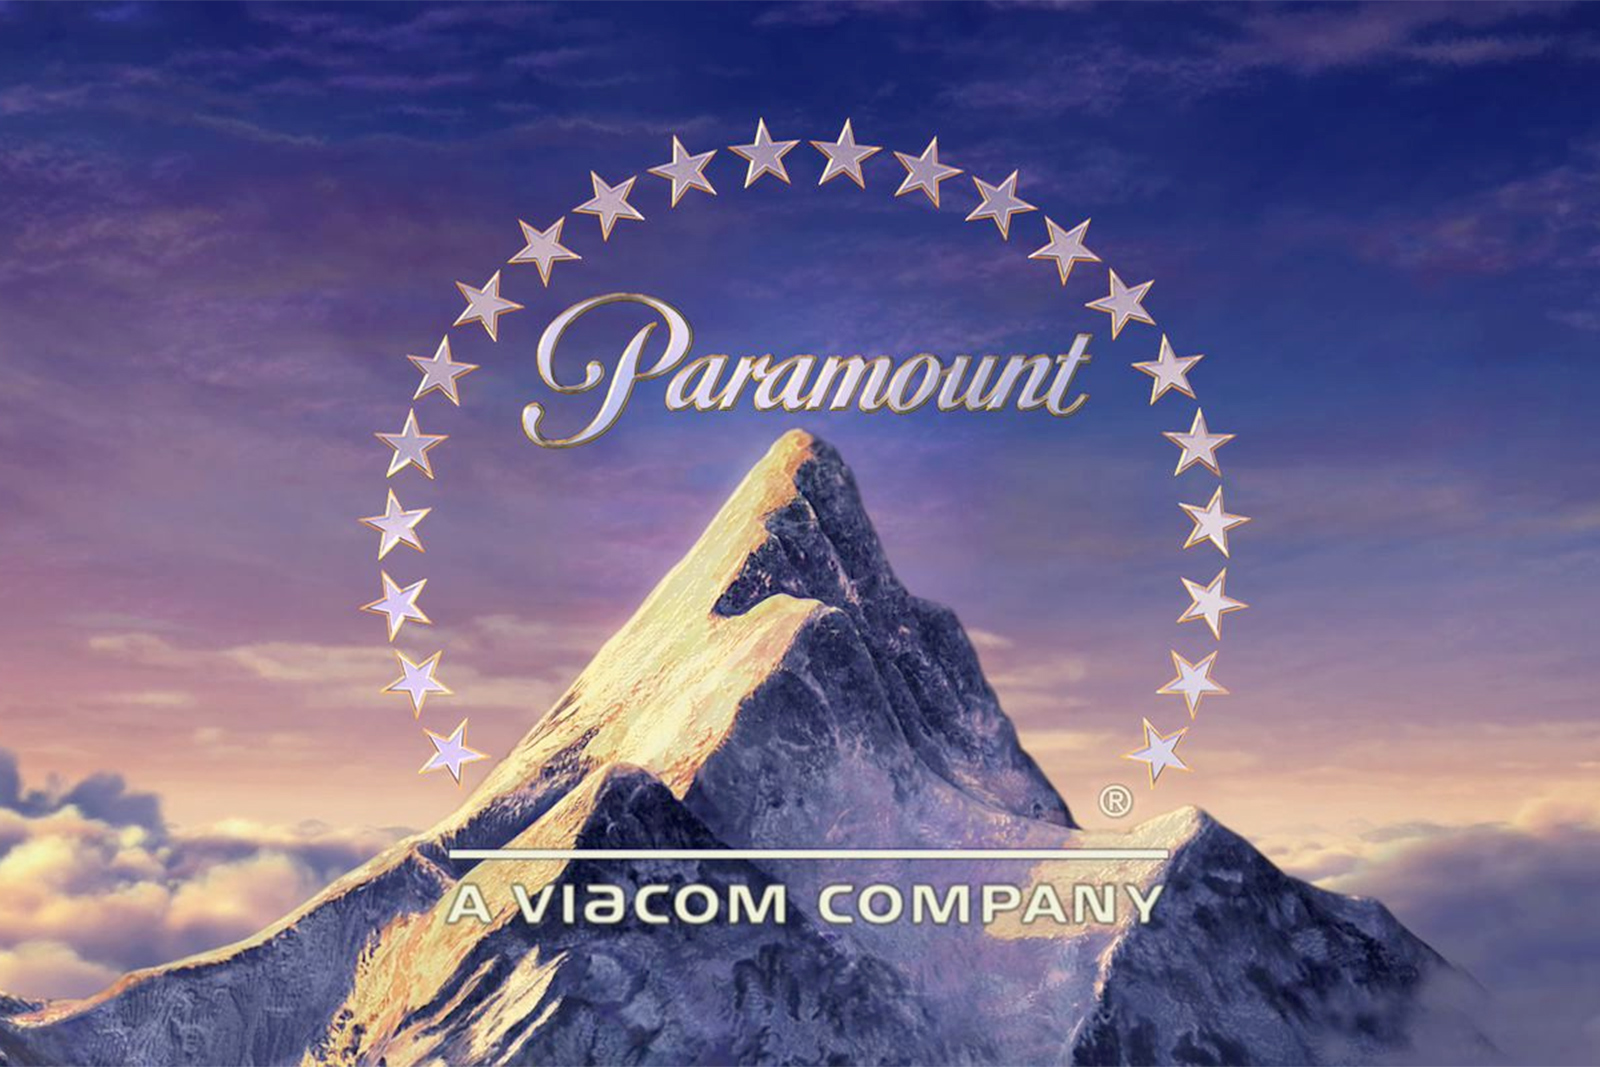 stock market and paramount Home businessuite markets paramount trading looking to  to view  paramount trading (jamaica) limited annual report 2017 click  previous  palace amusement experiencing significant jumps in stock price over the.